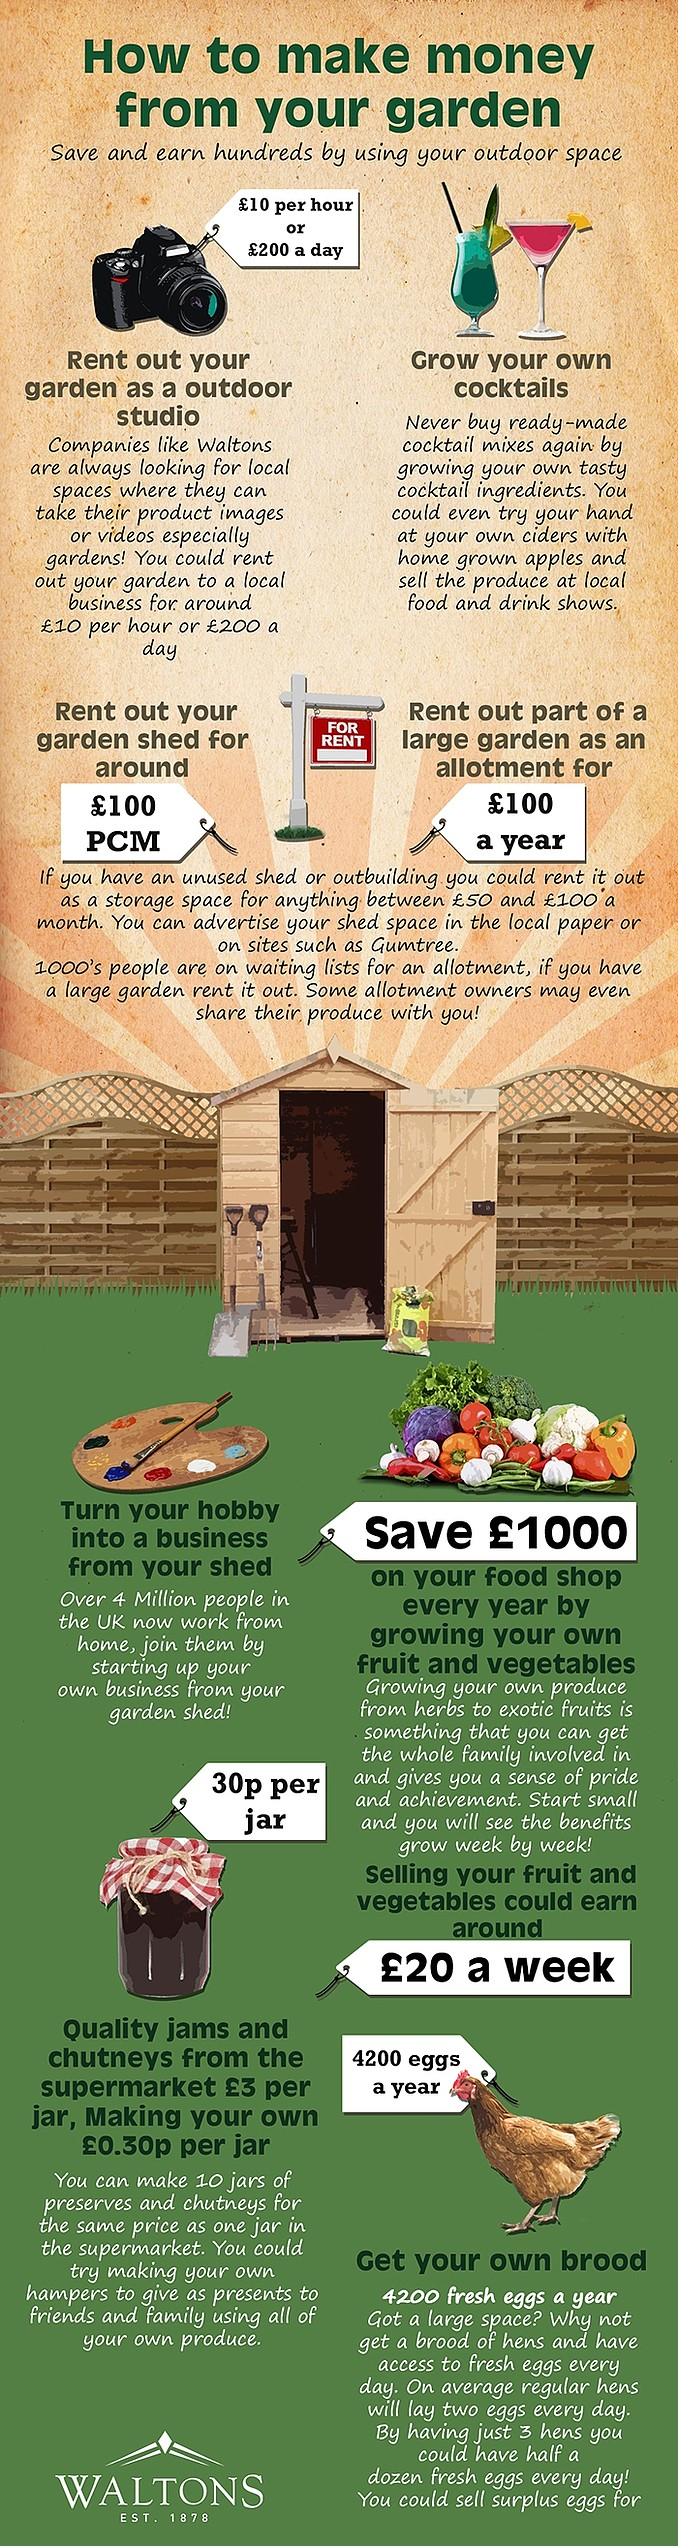 How To Make Money From Your Garden #infographic #Make Money #How to Make Money #Garden